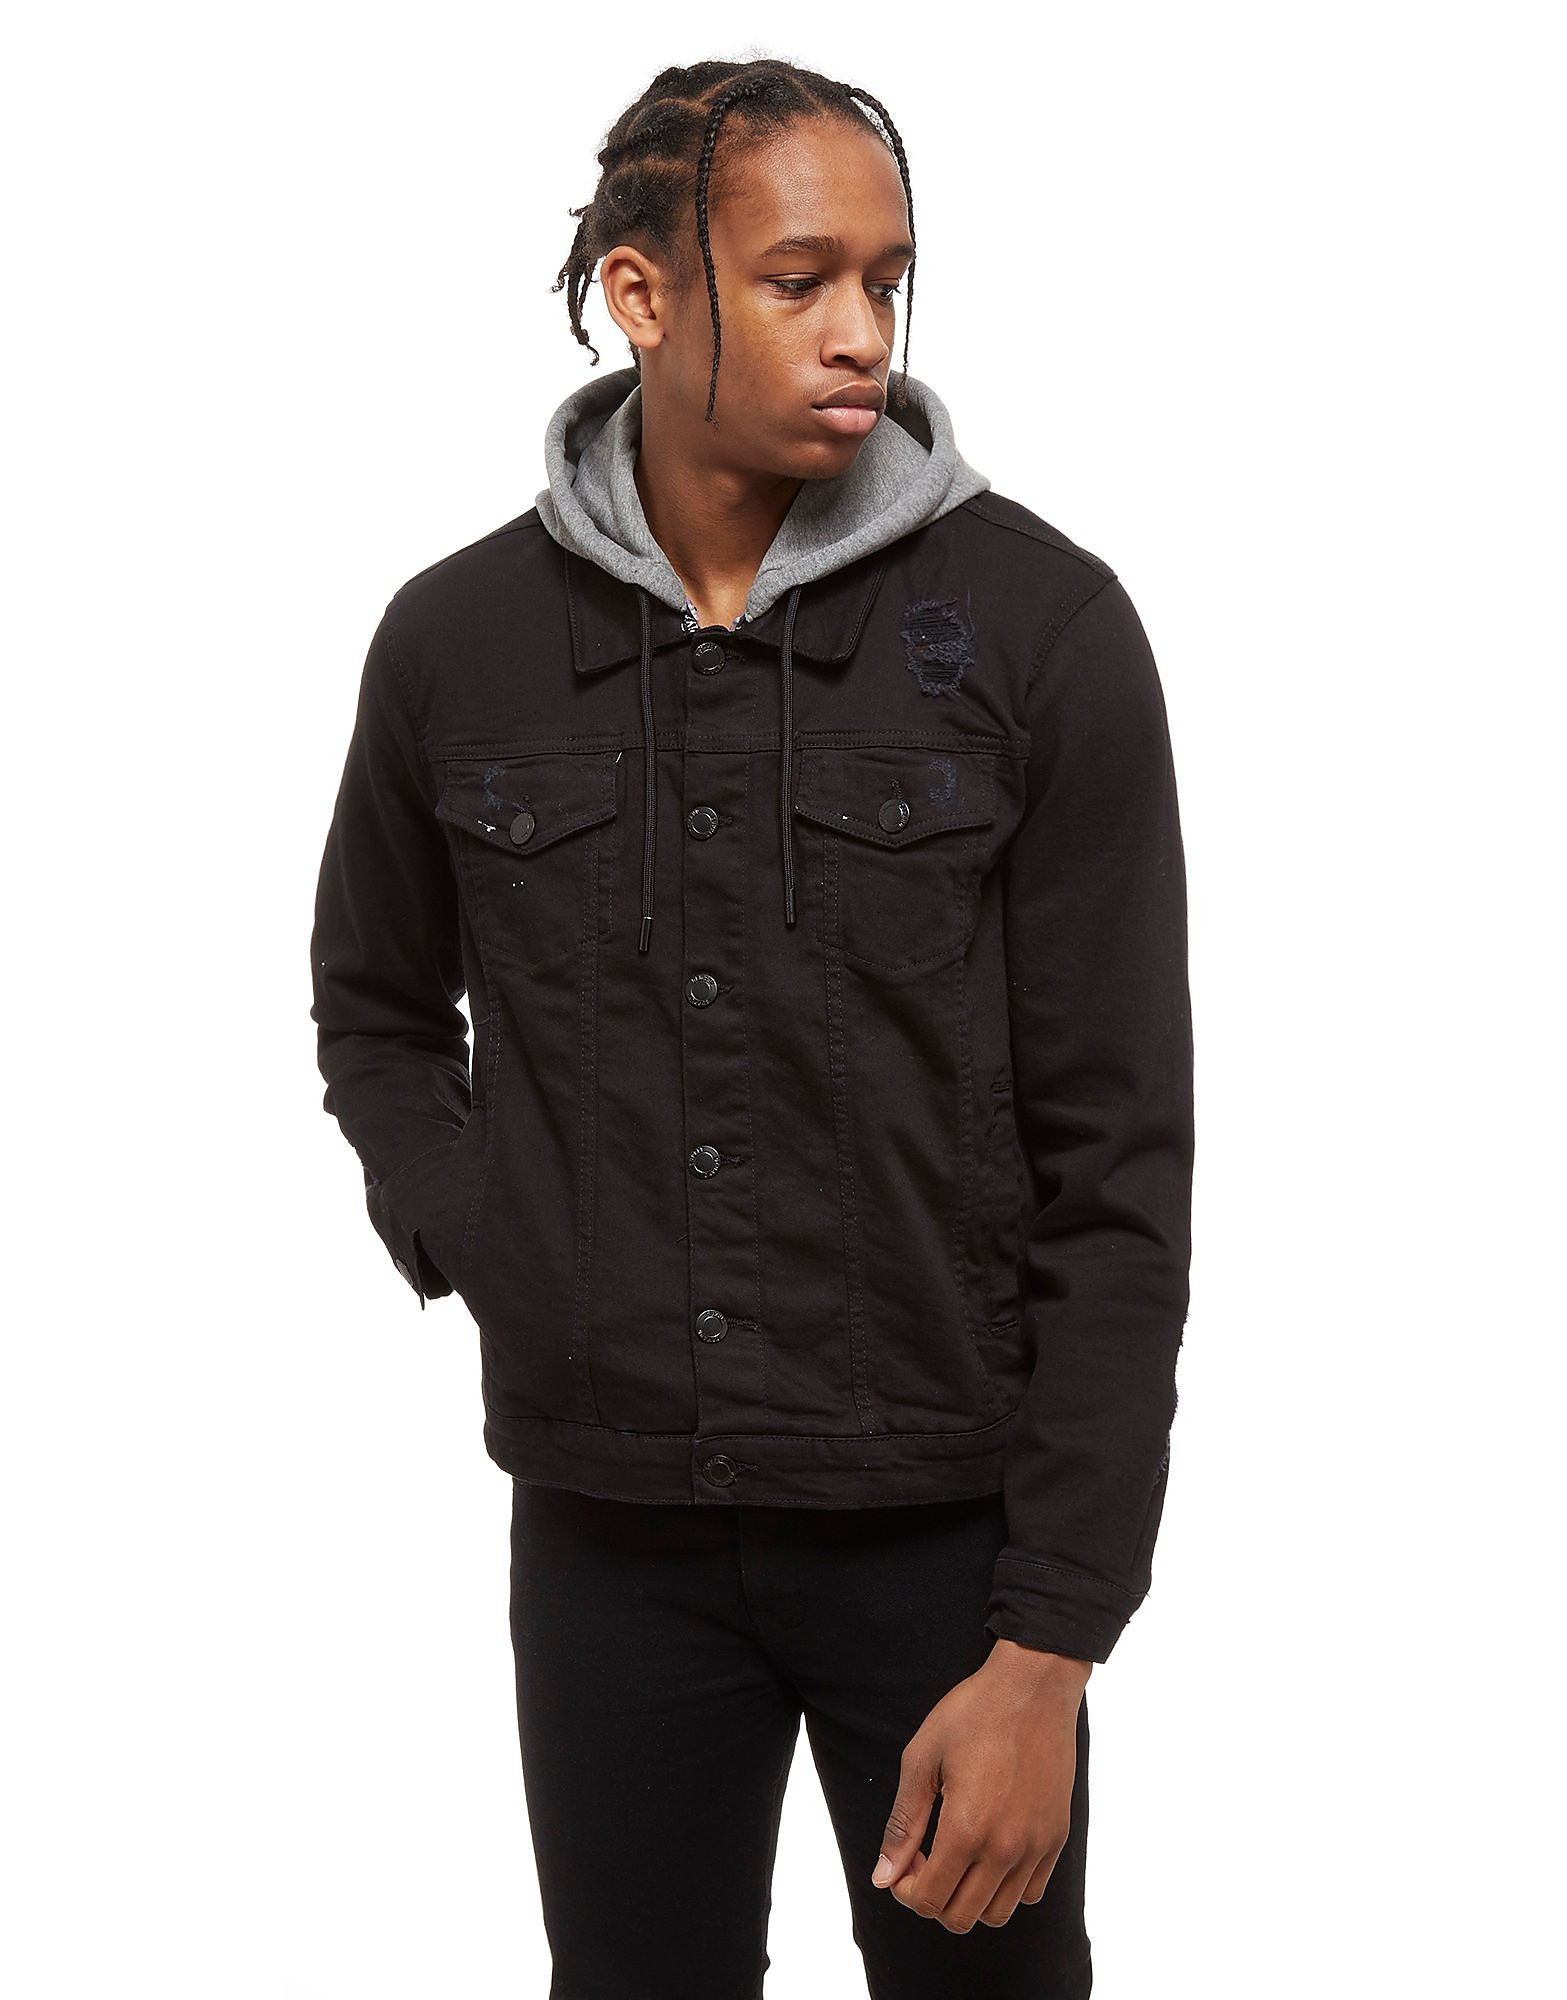 Supply & Demand Distressed Denim Jacket - Only at JD, Black